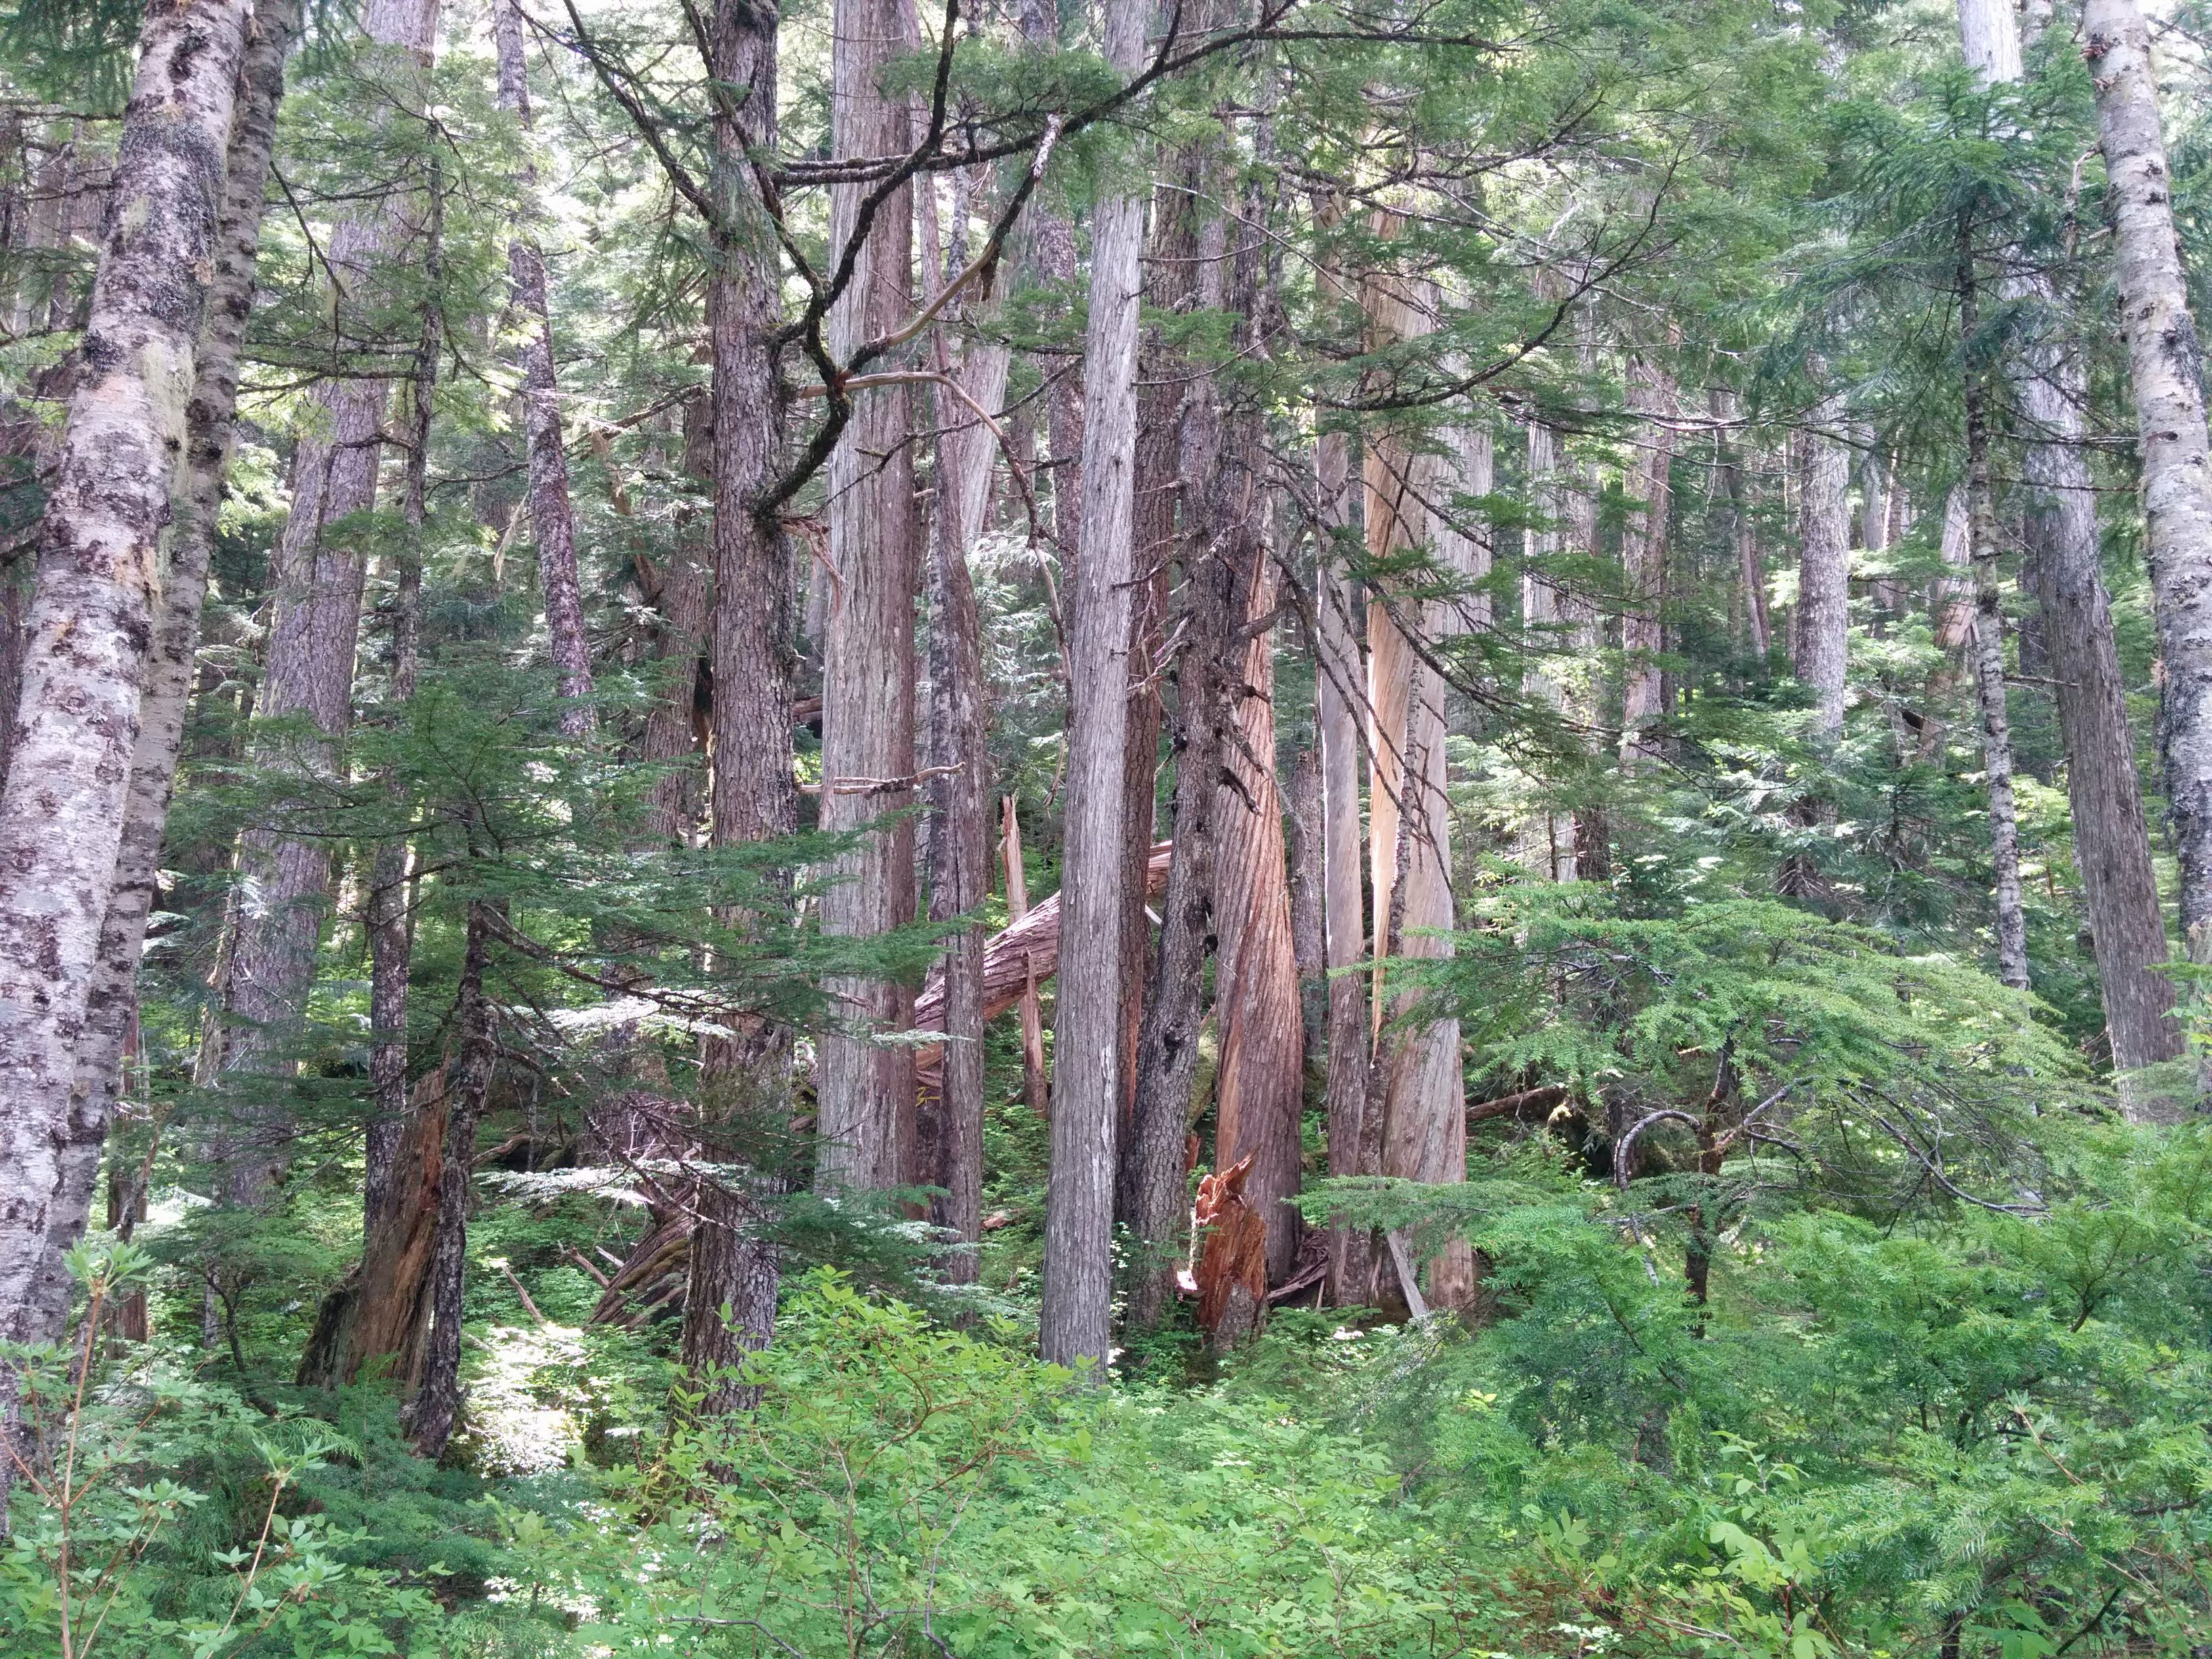 Old-growth forest slated for logging by BCTS in Schmidt Creek.